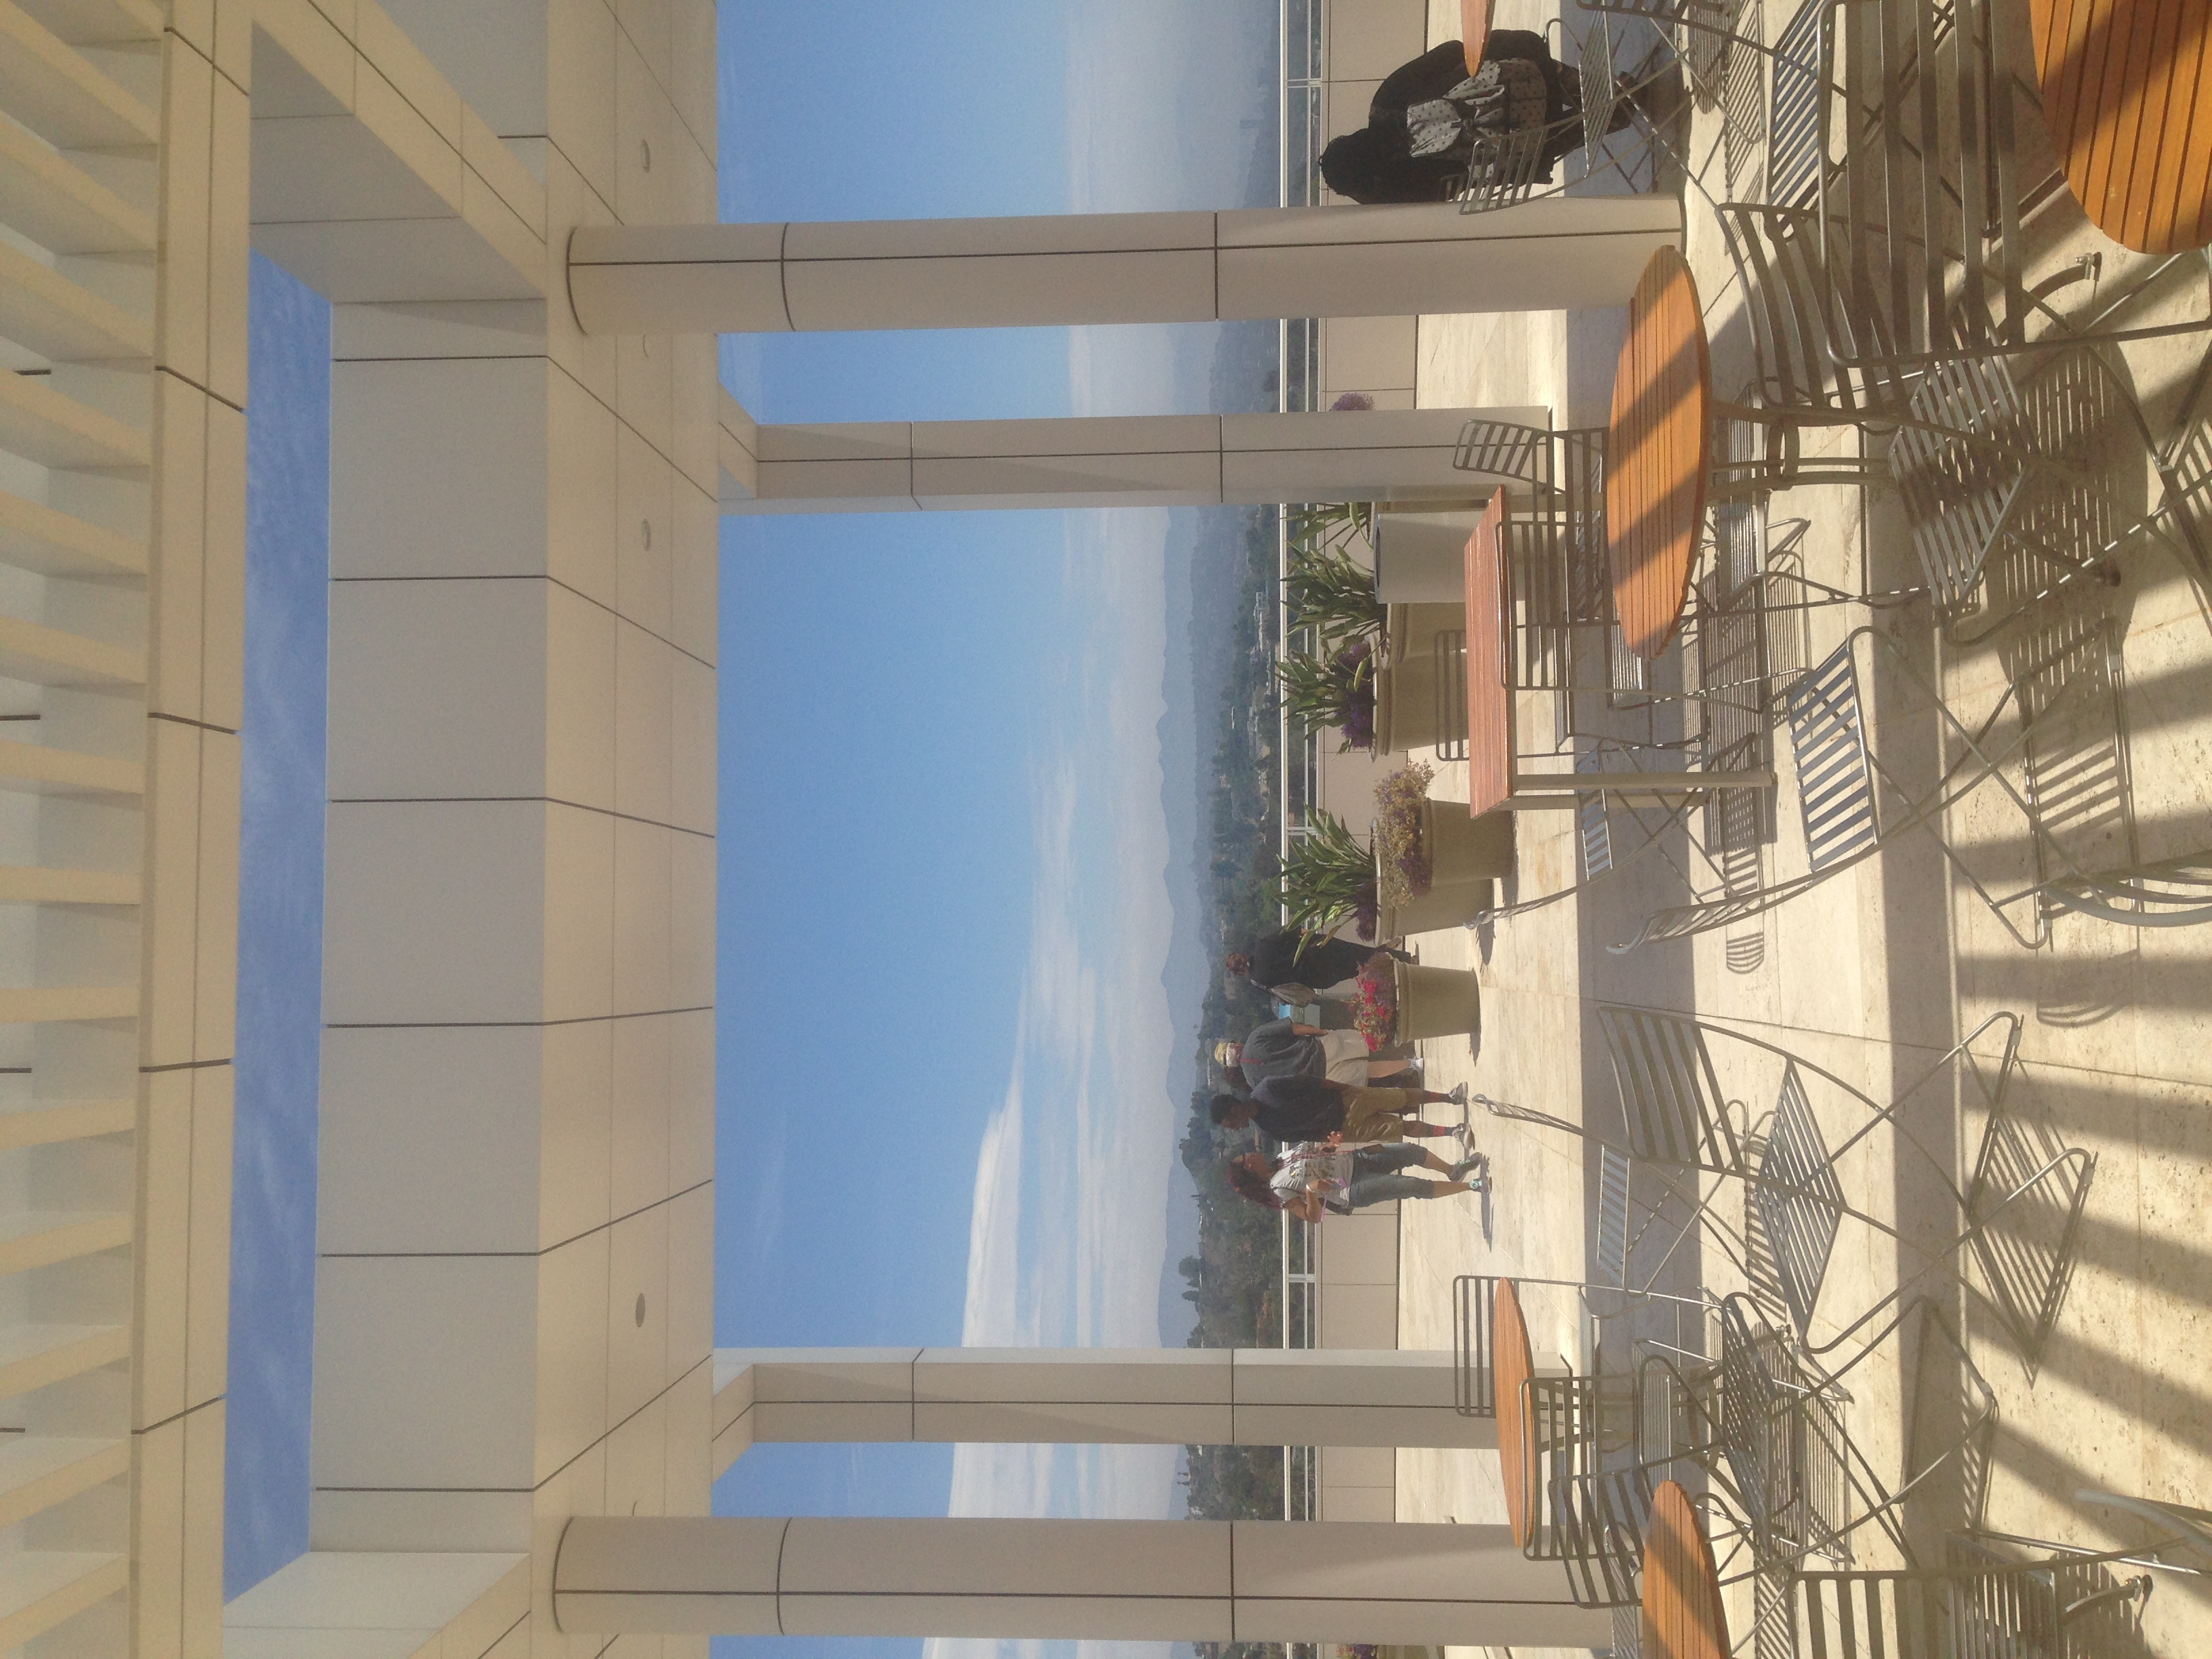 The Getty Museum was unreal! The structure alone had me ooing and ahhing all day. We drank champagne, ate cheese and saw some of Degas' most famous works. What a day!